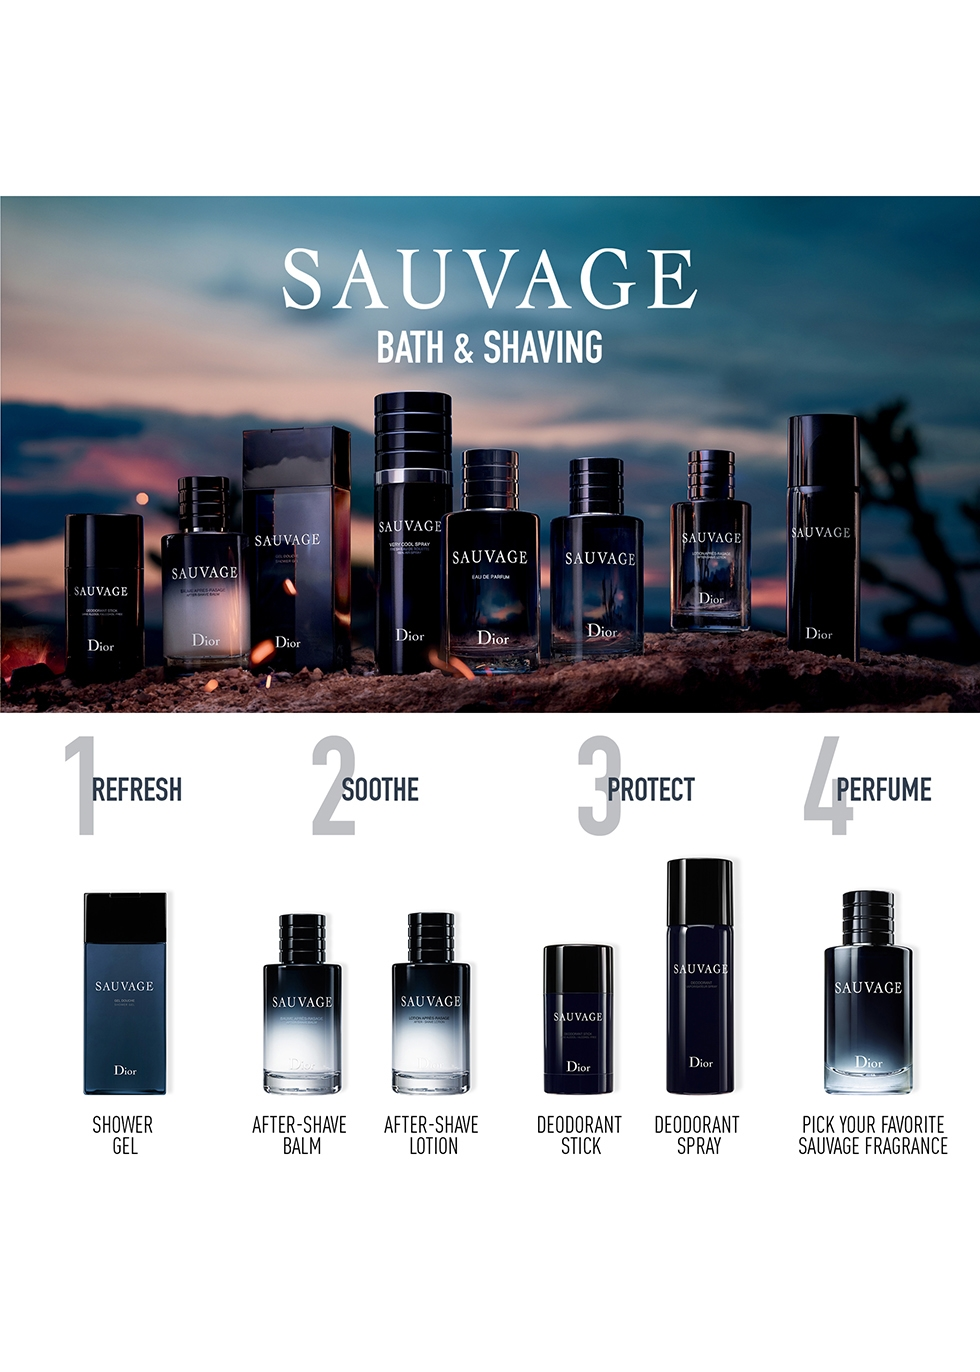 Sauvage After-Shave Lotion 100ml - Dior